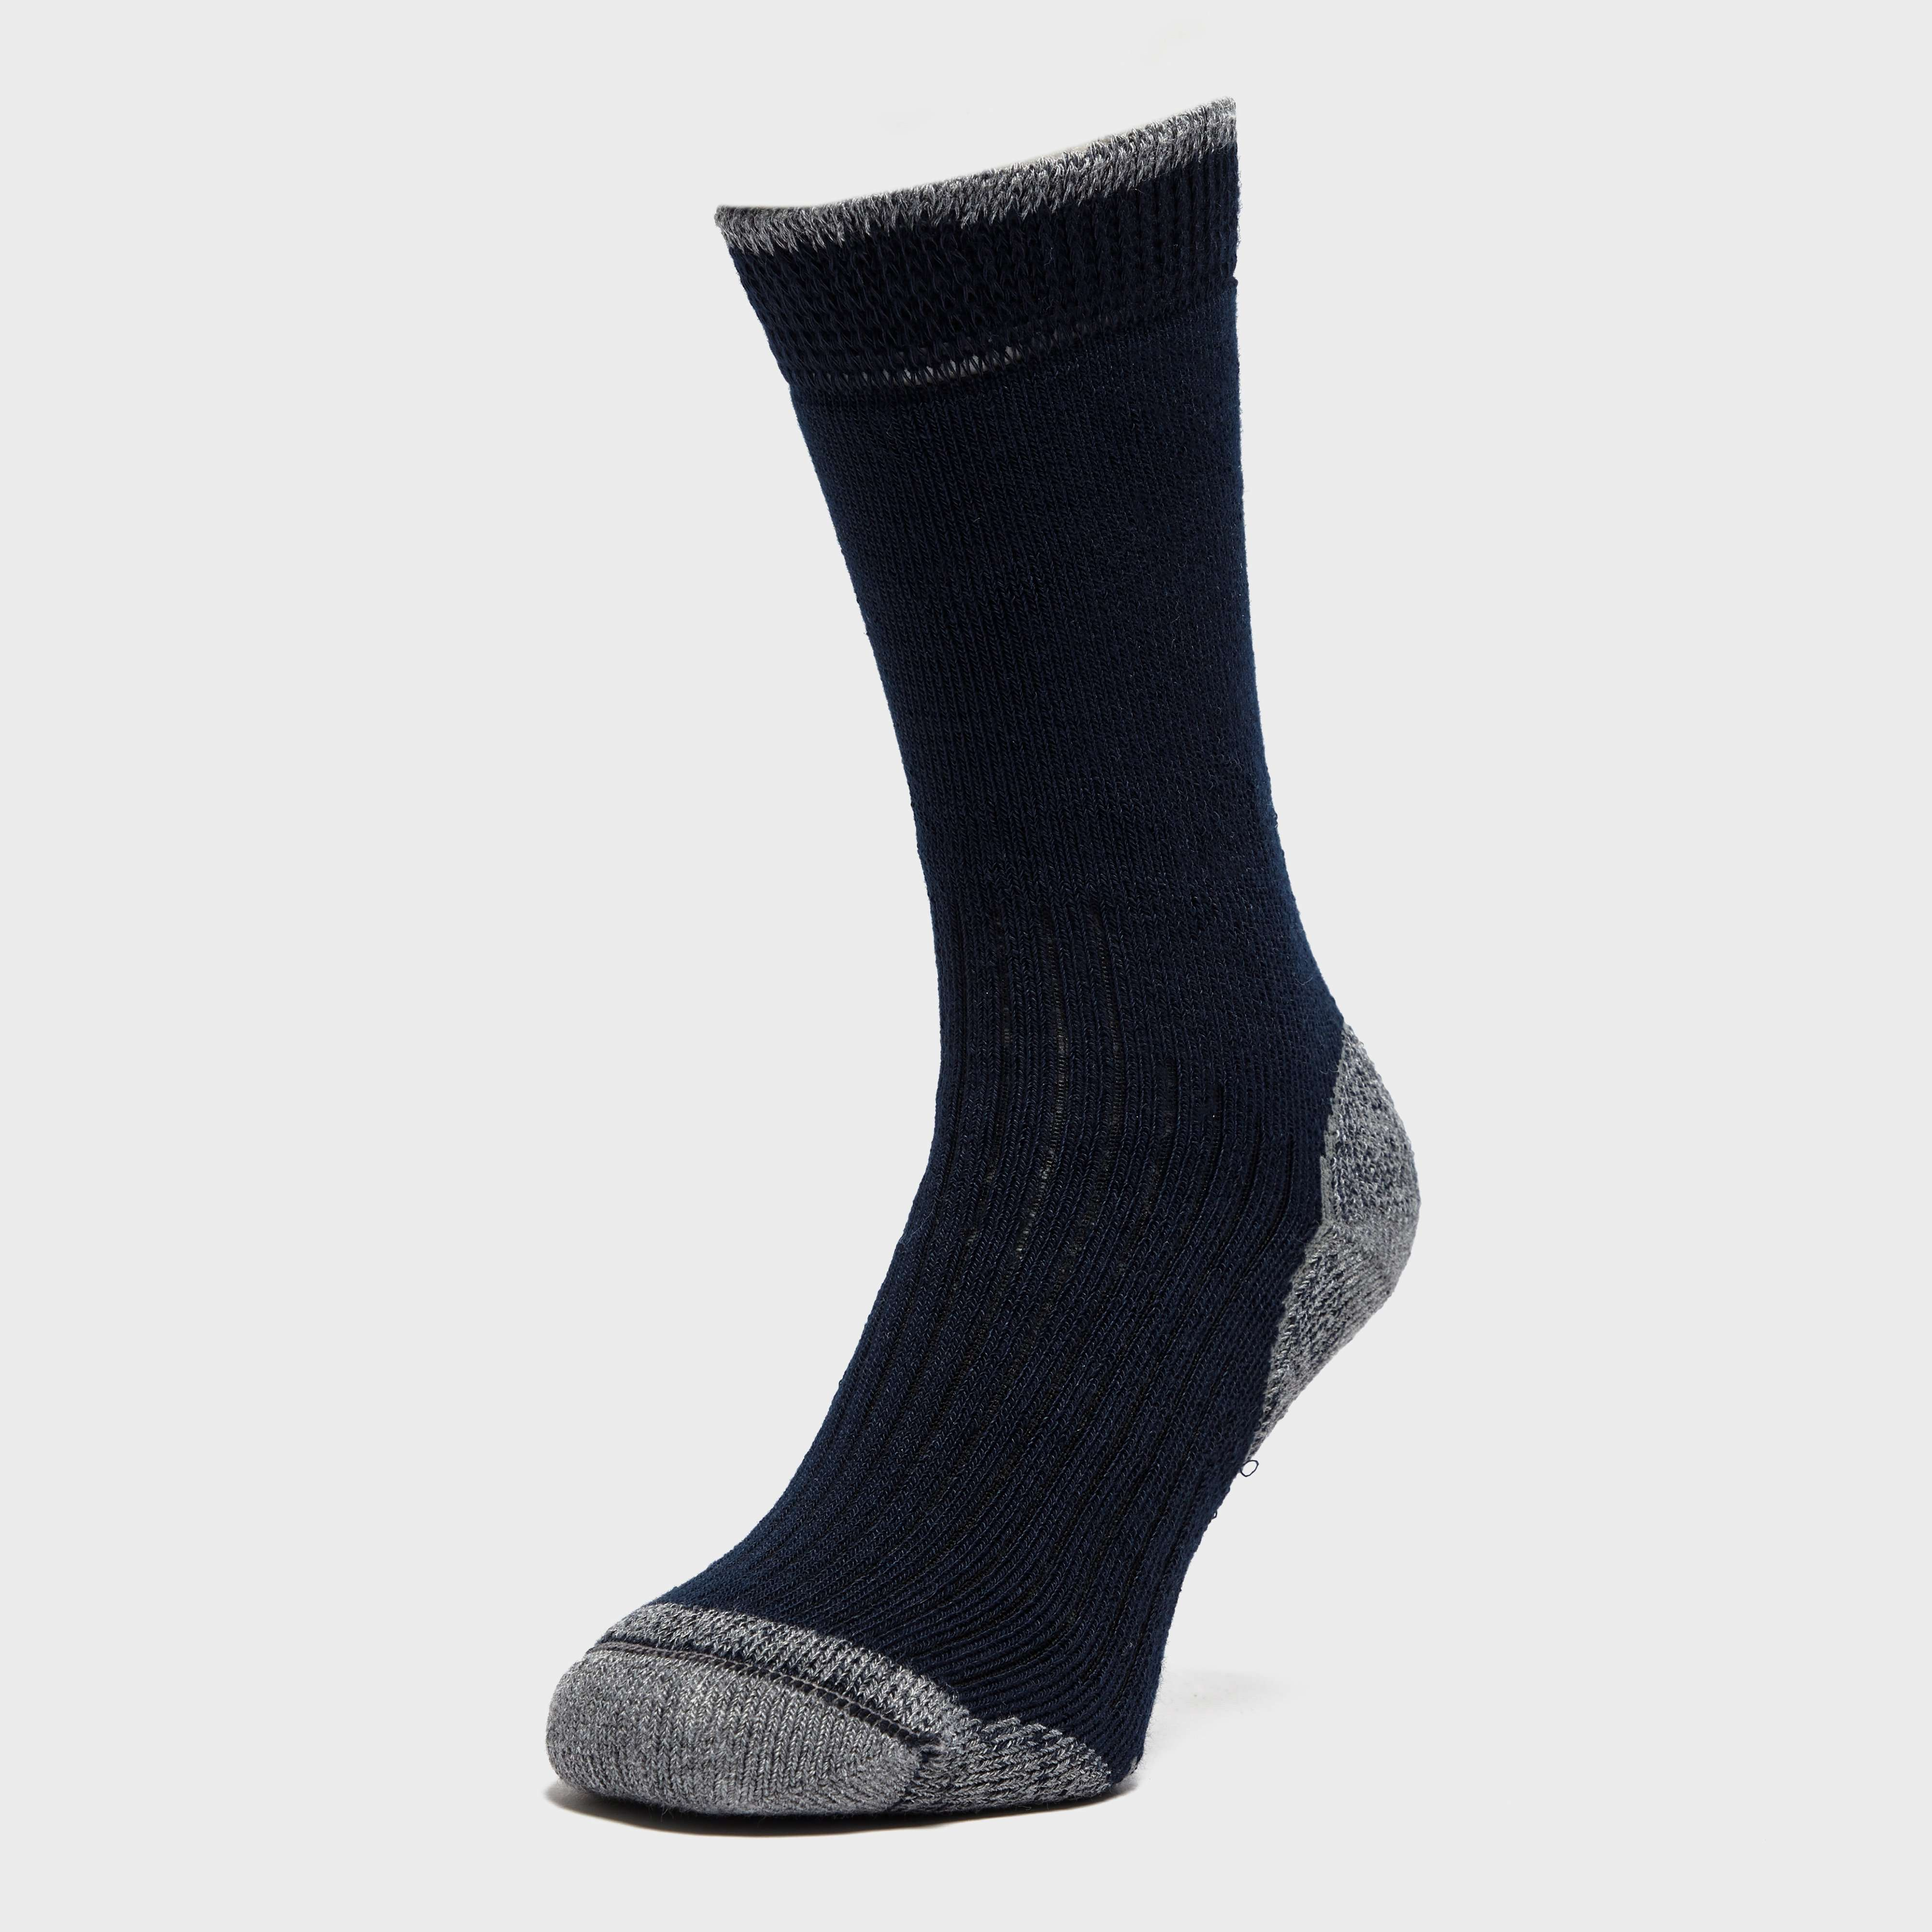 BRASHER Men's Hiker Crew Socks